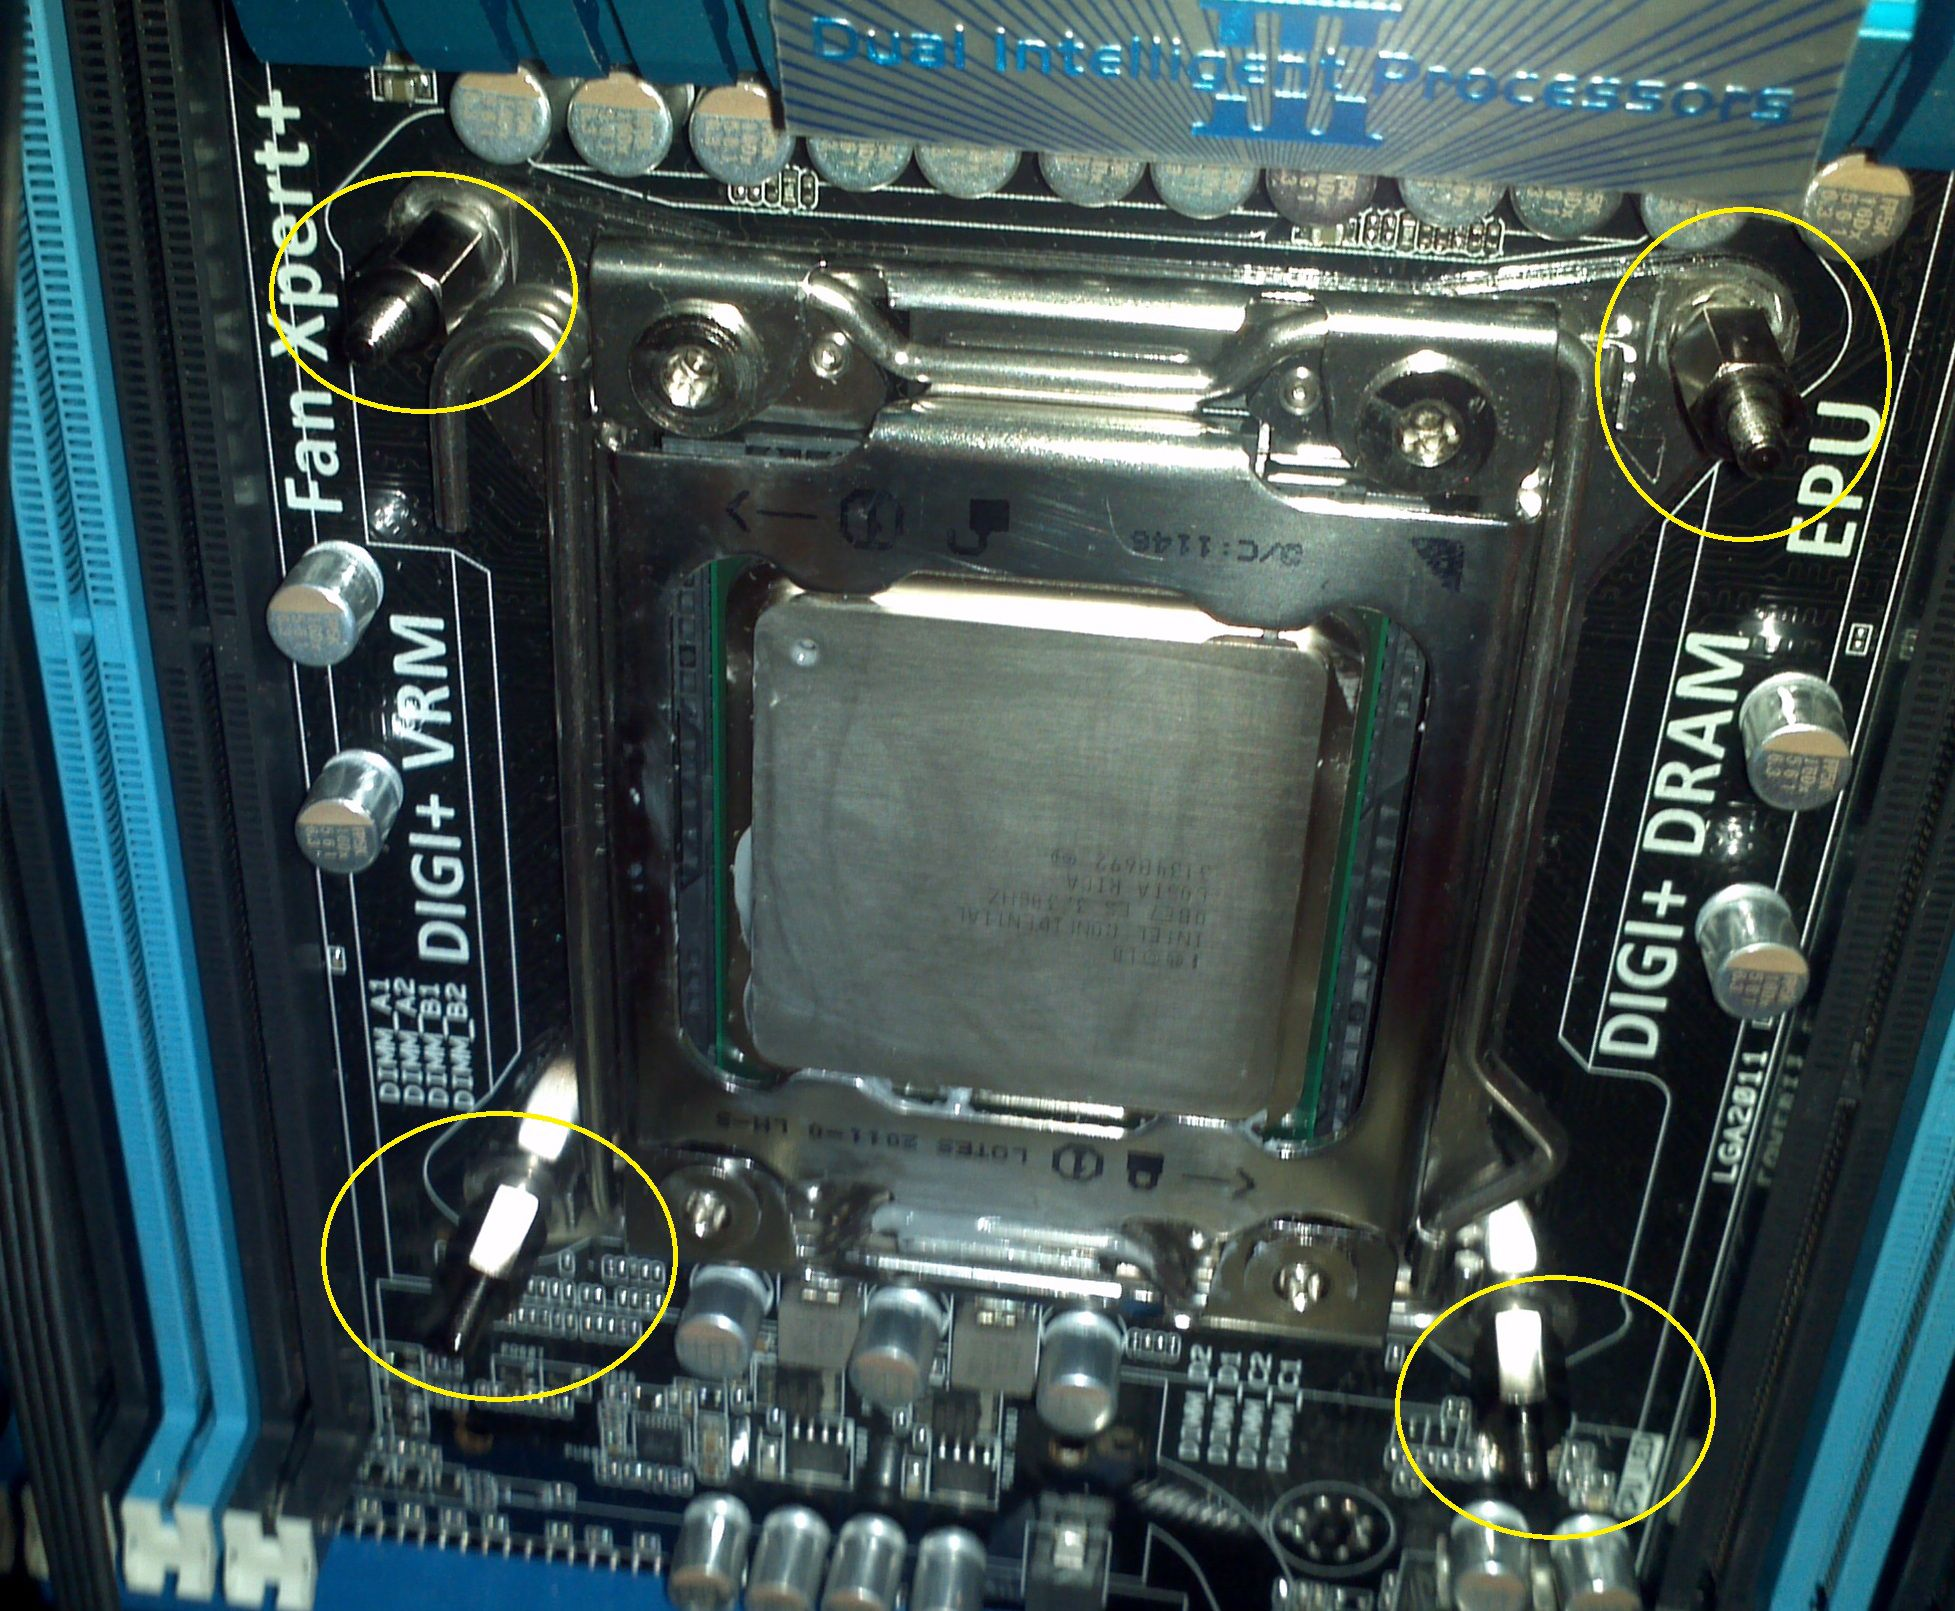 How To Install The Hydro Series H100i Cpu Cooler further Eda360insider wordpress besides How Can I Get The Pci Port Type furthermore Day Of Nvidia Chipset Reckoning Arrives together with Chipset. on intel cpu diagram